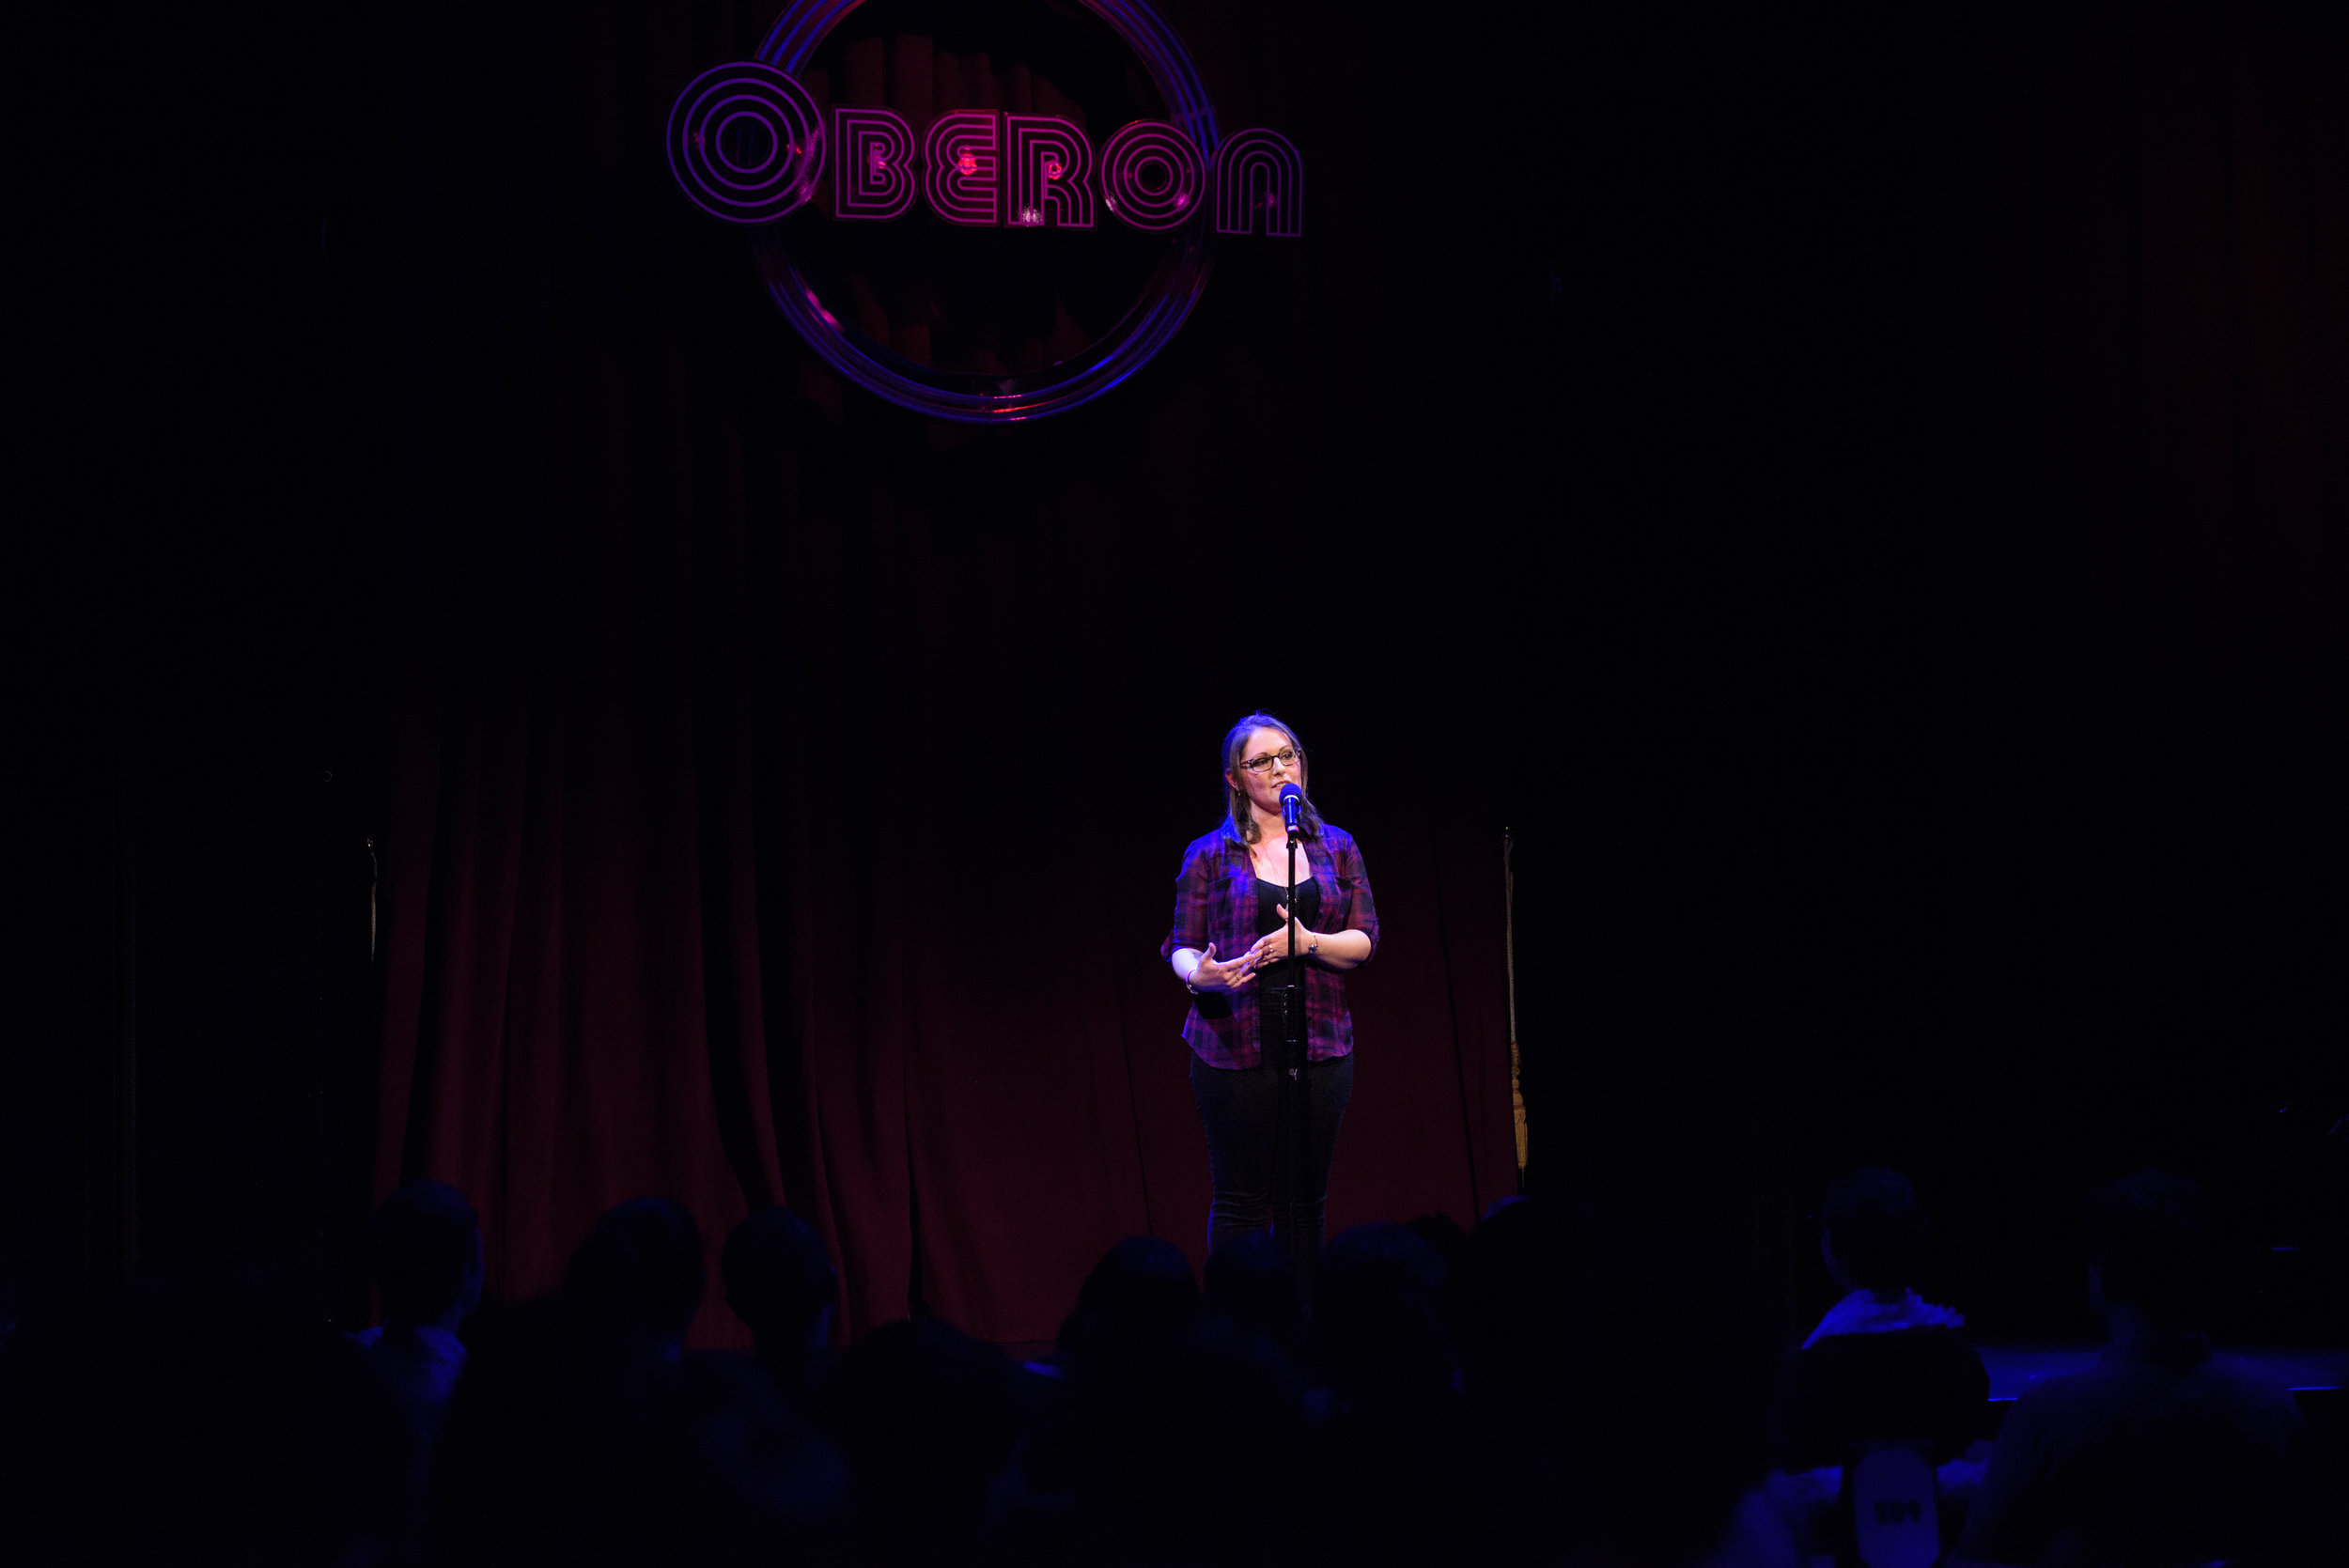 Brianna Shaughnessy shares her story with the Story Collider audience at the Oberon in Boston, MA in February 2019. Photo by Kate Flock.